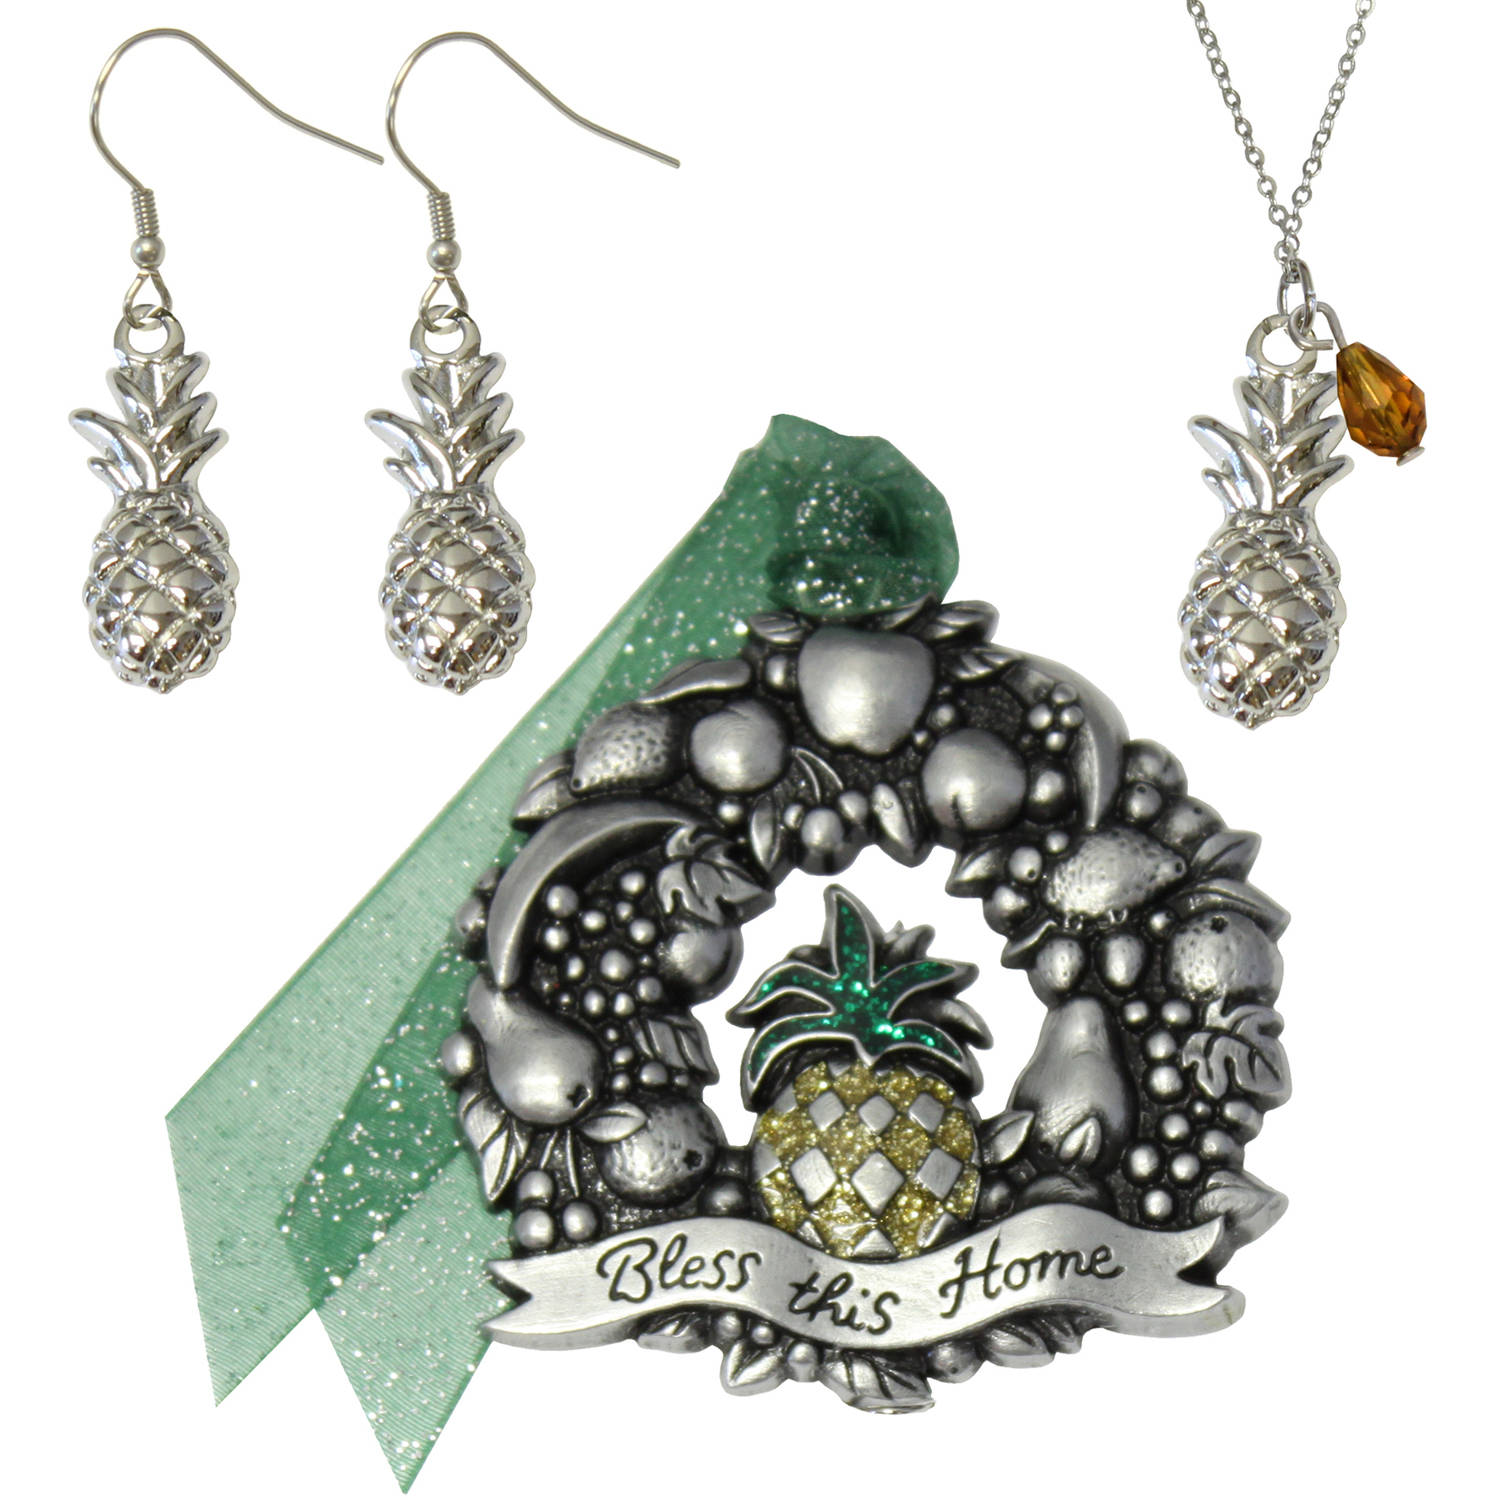 Gloria Duchin Pineapple Ornament, Necklace and Earrings Jewelry Set